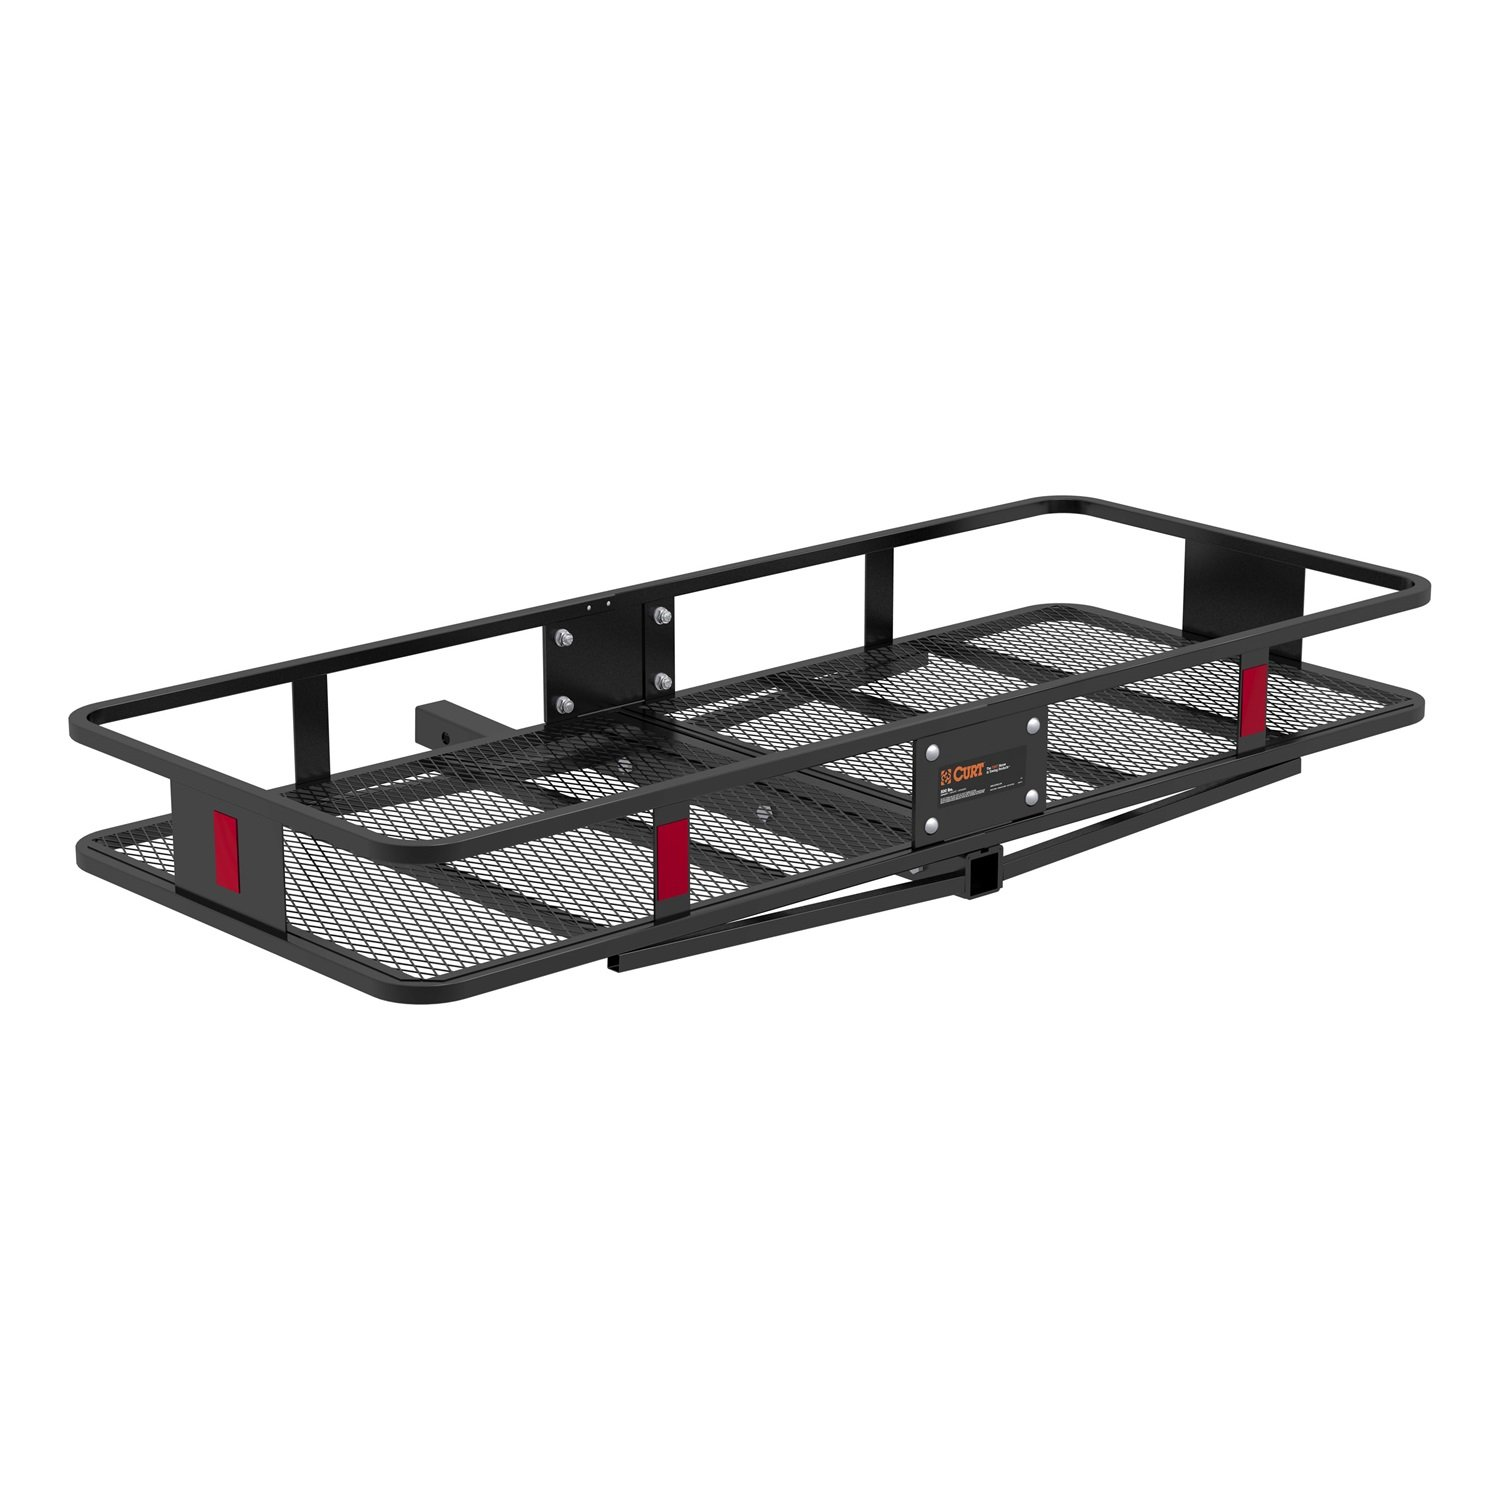 CURT 18152 Basket Trailer Hitch Cargo Carrier, 500 lbs. Capacity, 60-Inch x 24-Inch x 6-Inch, Fits 2-Inch Receiver